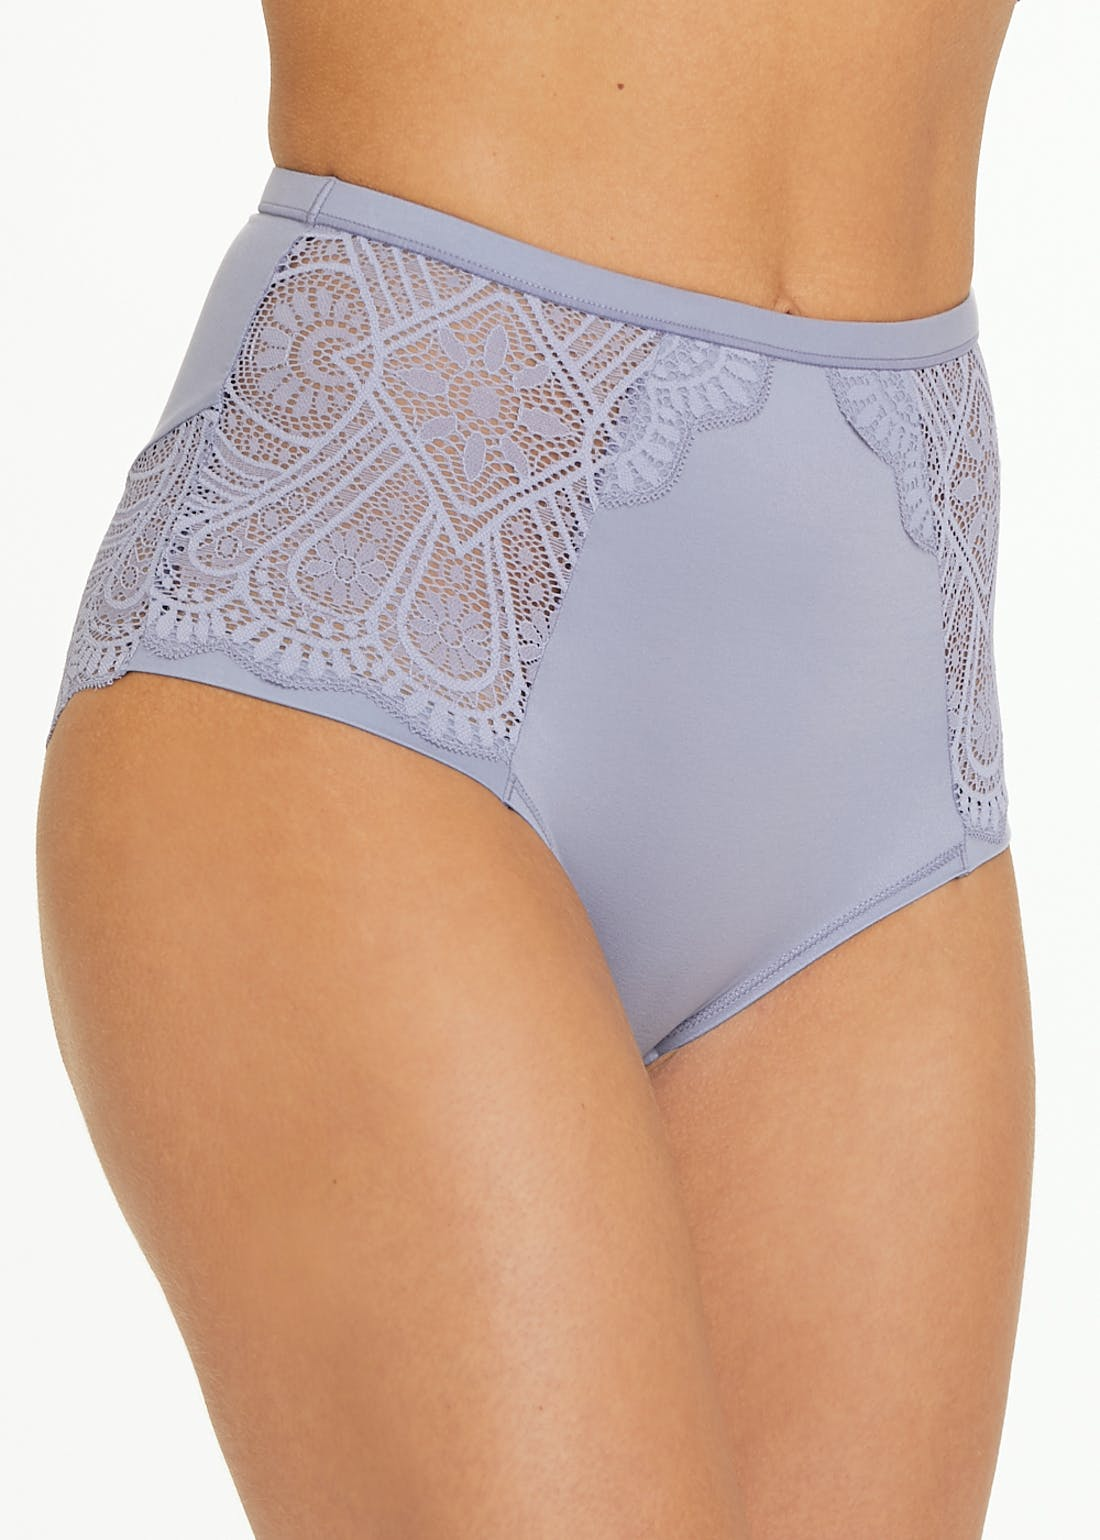 Lace Full Knickers